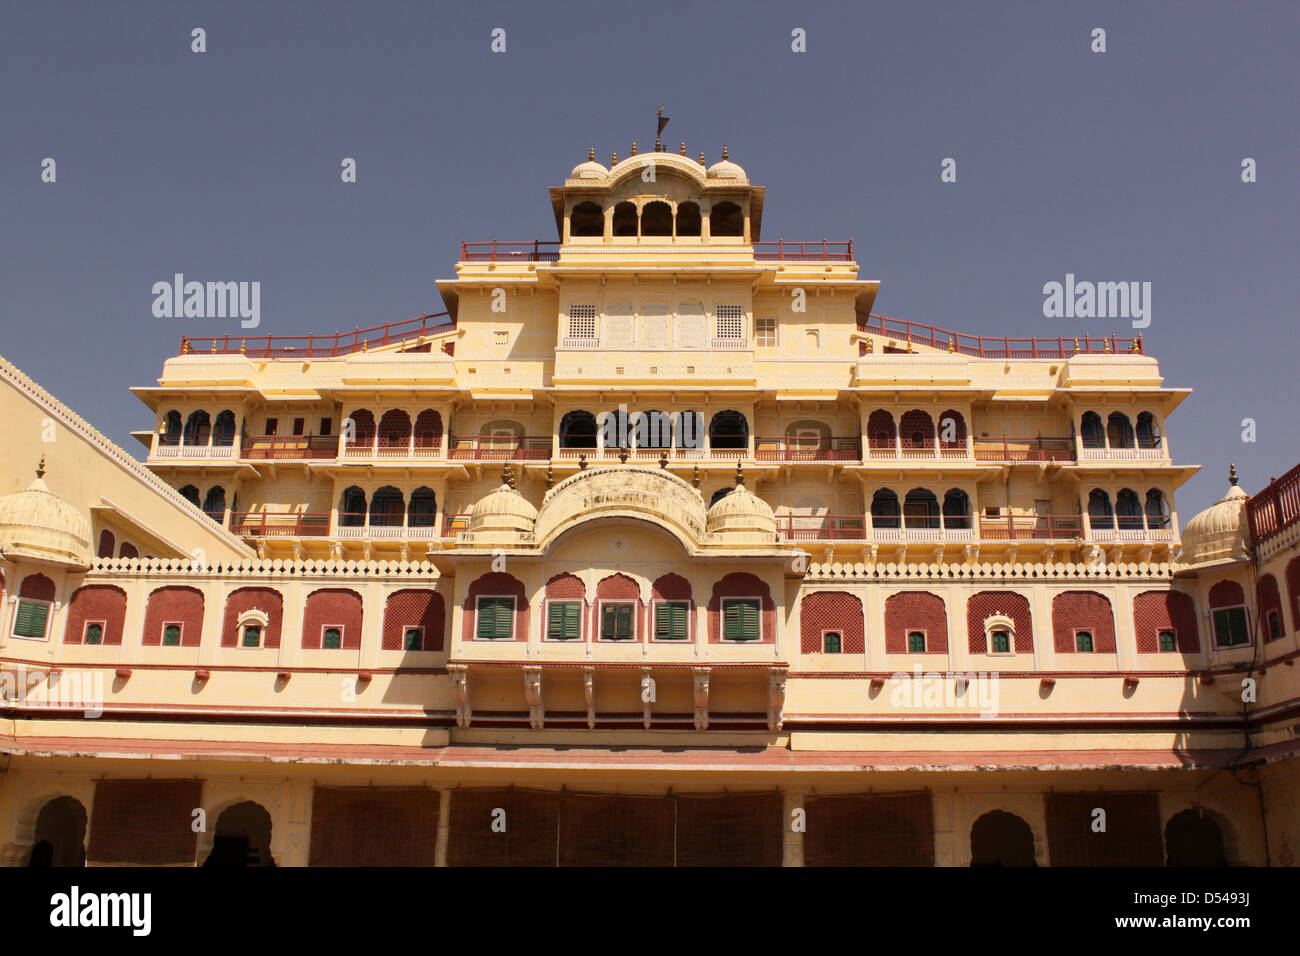 Chandra Mahal City Palace complex Jaipur  Rajasthan state, India - Stock Image